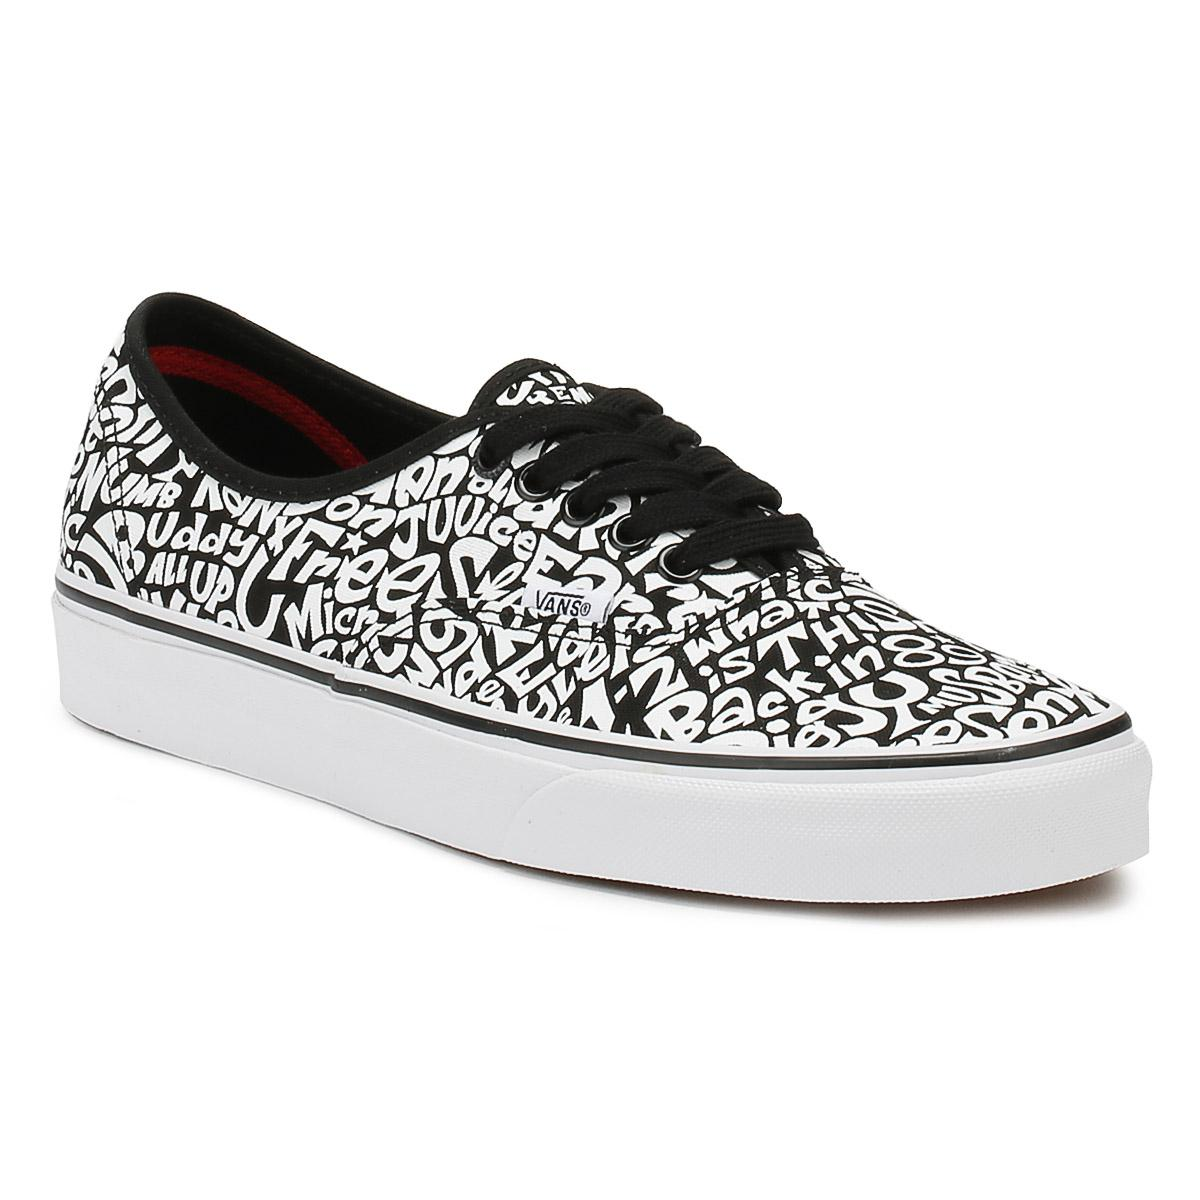 3db14efa4a6 Vans Mens Black / White A Tribe Called Quest Authentic Trainers in ...